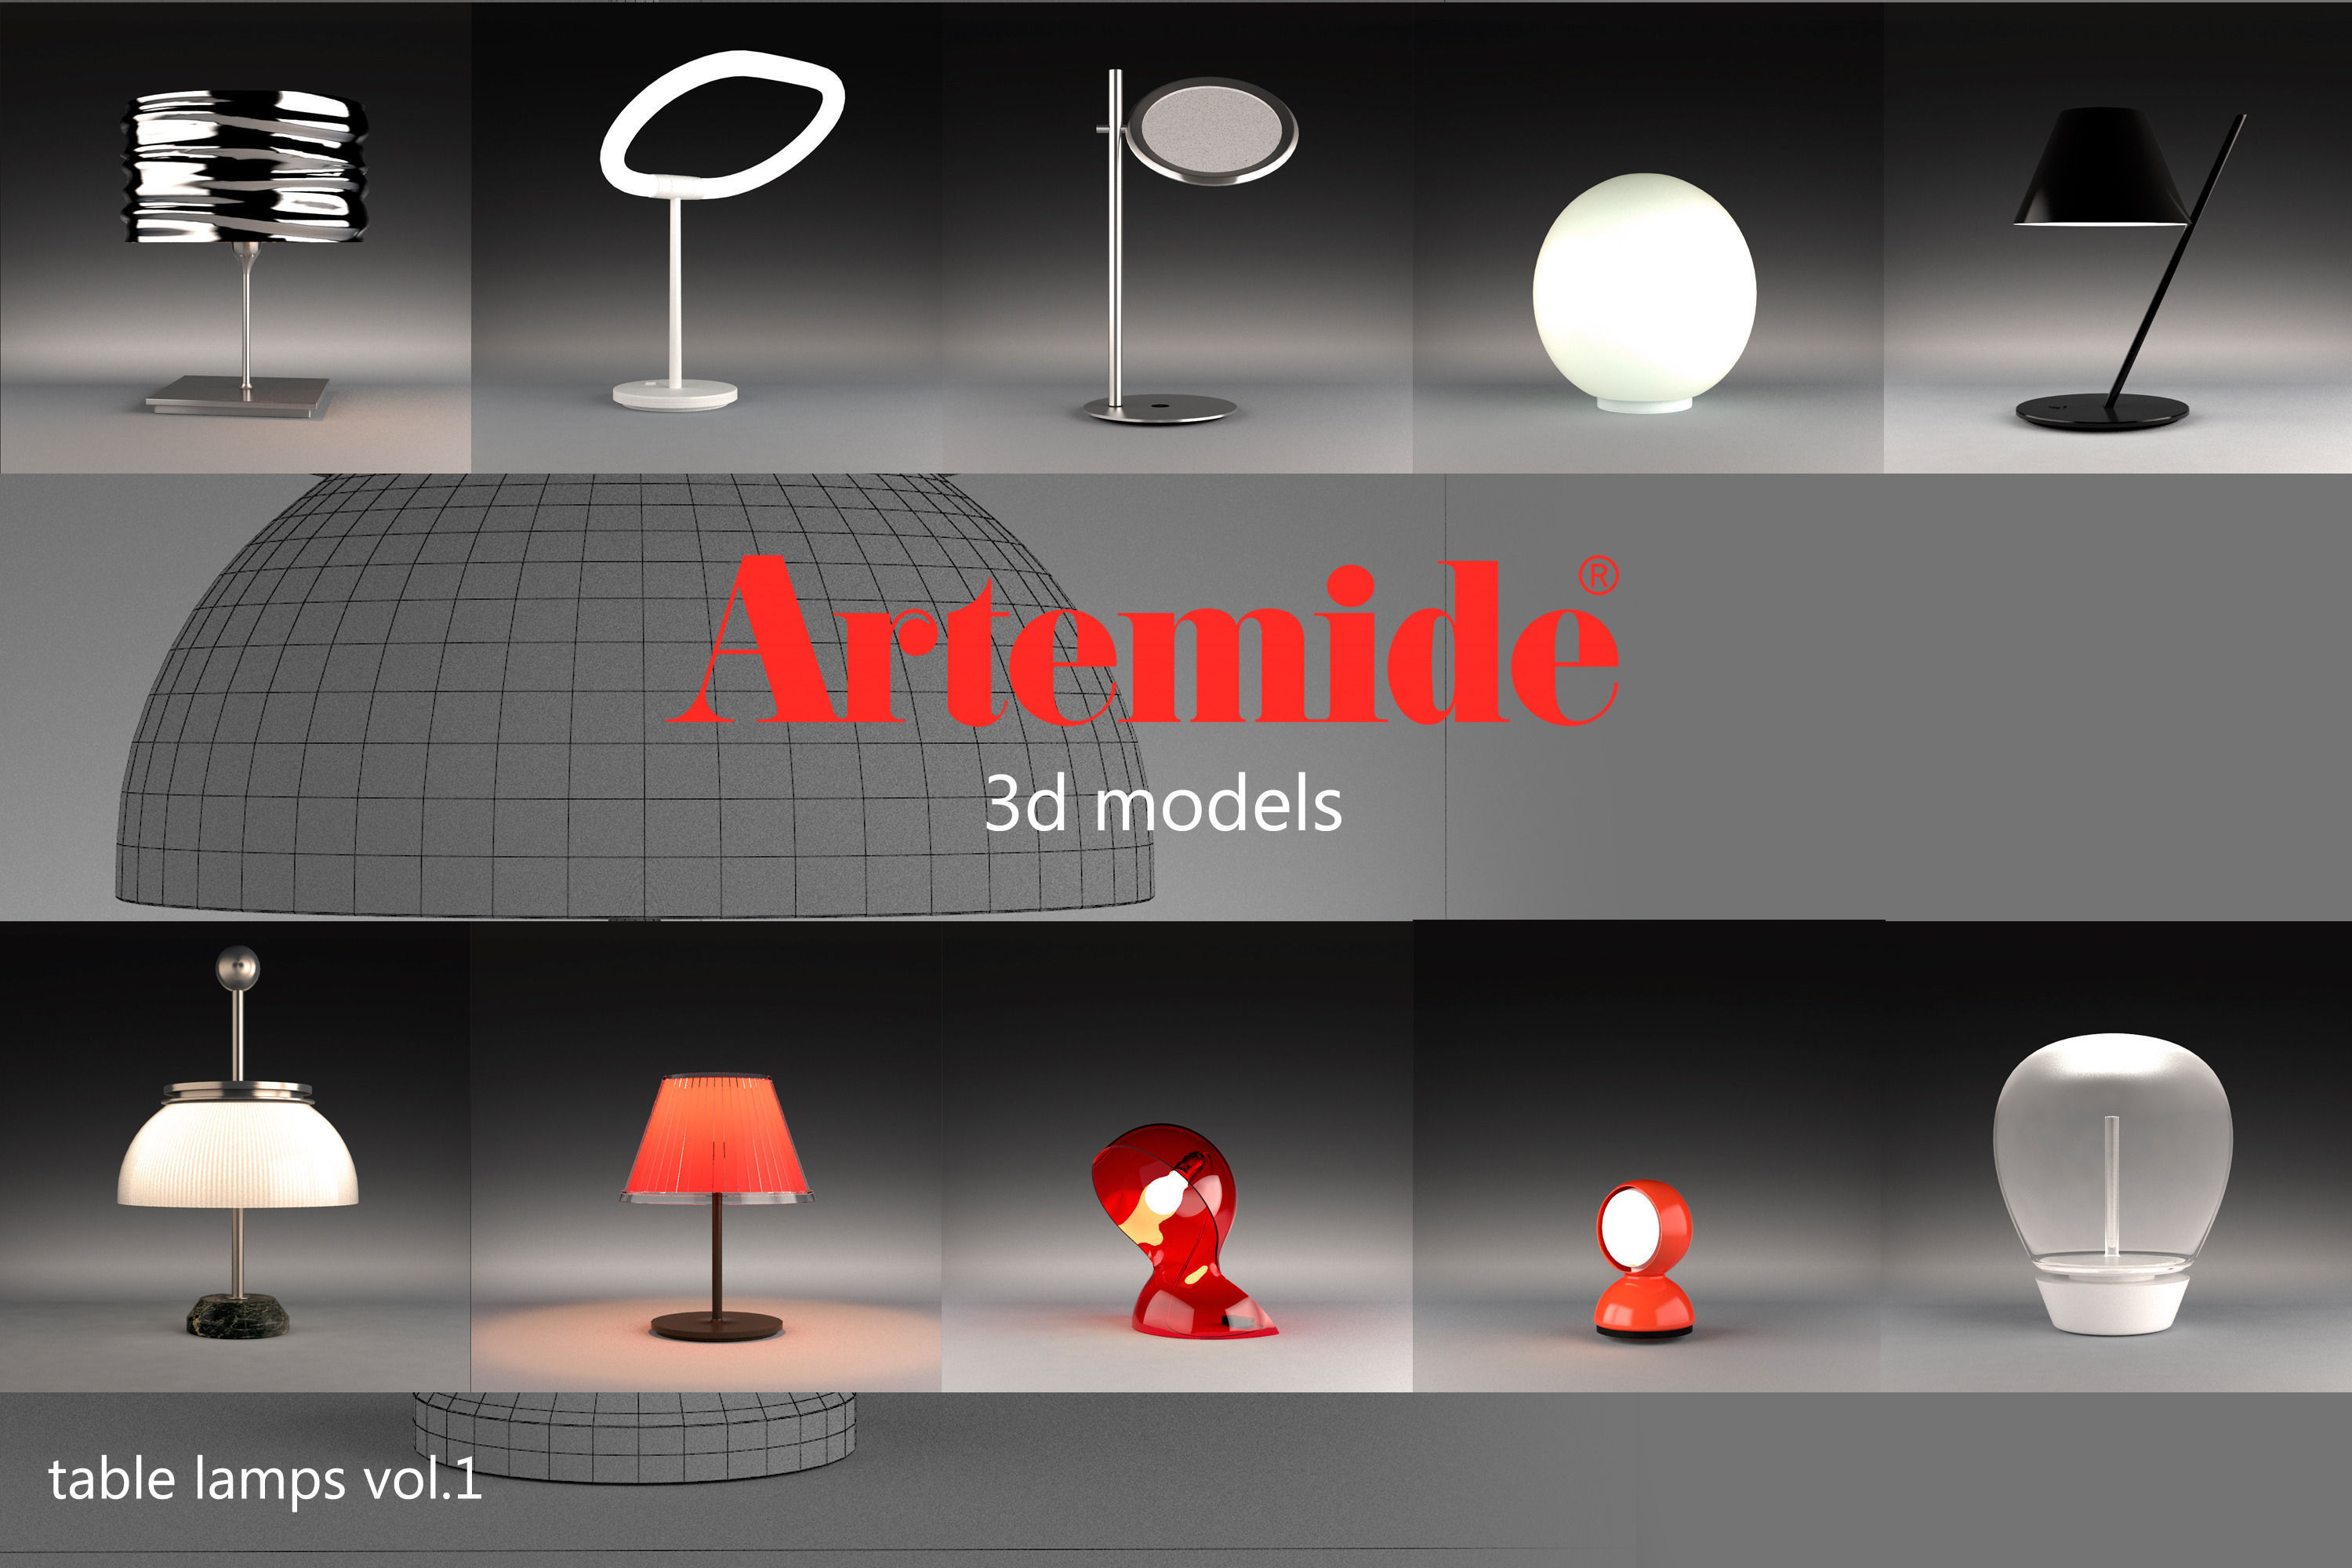 Artemide table lamps collection vol 1 3d cgtrader artemide table lamps collection vol 1 3d model max obj 1 aloadofball Choice Image